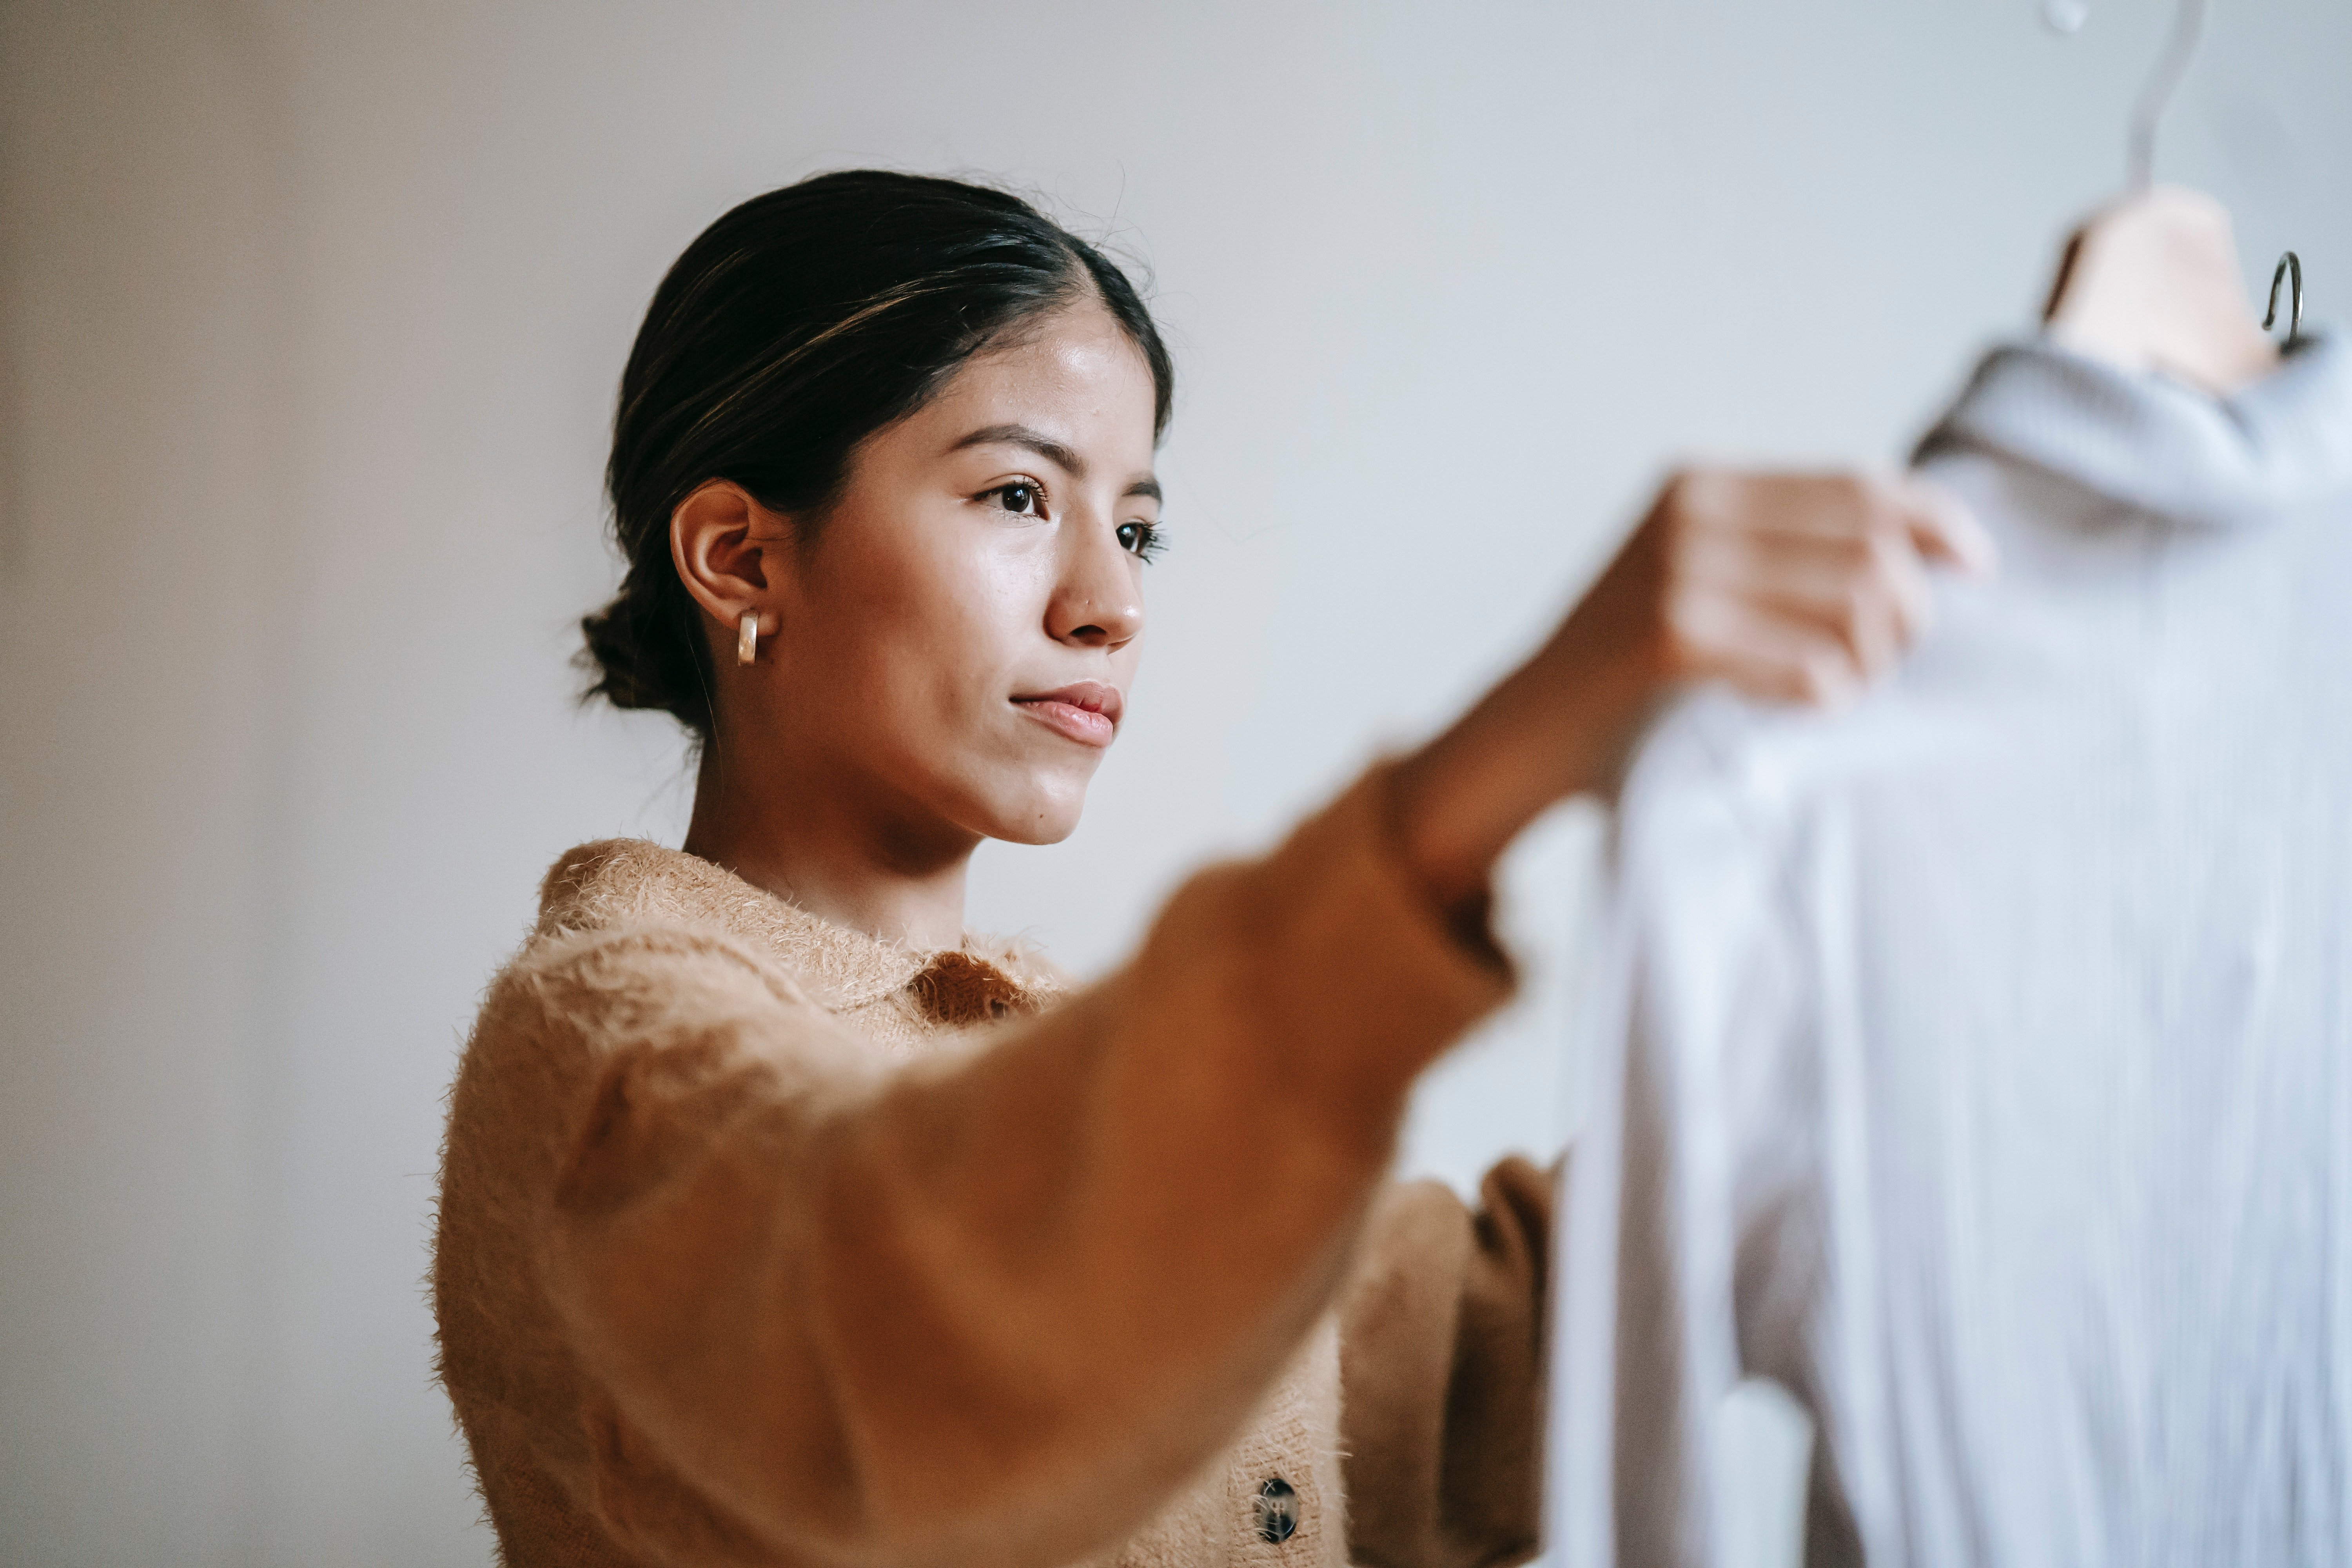 I wanted Matthew to try on the T-shirt I chose for him | Photo: Pexels